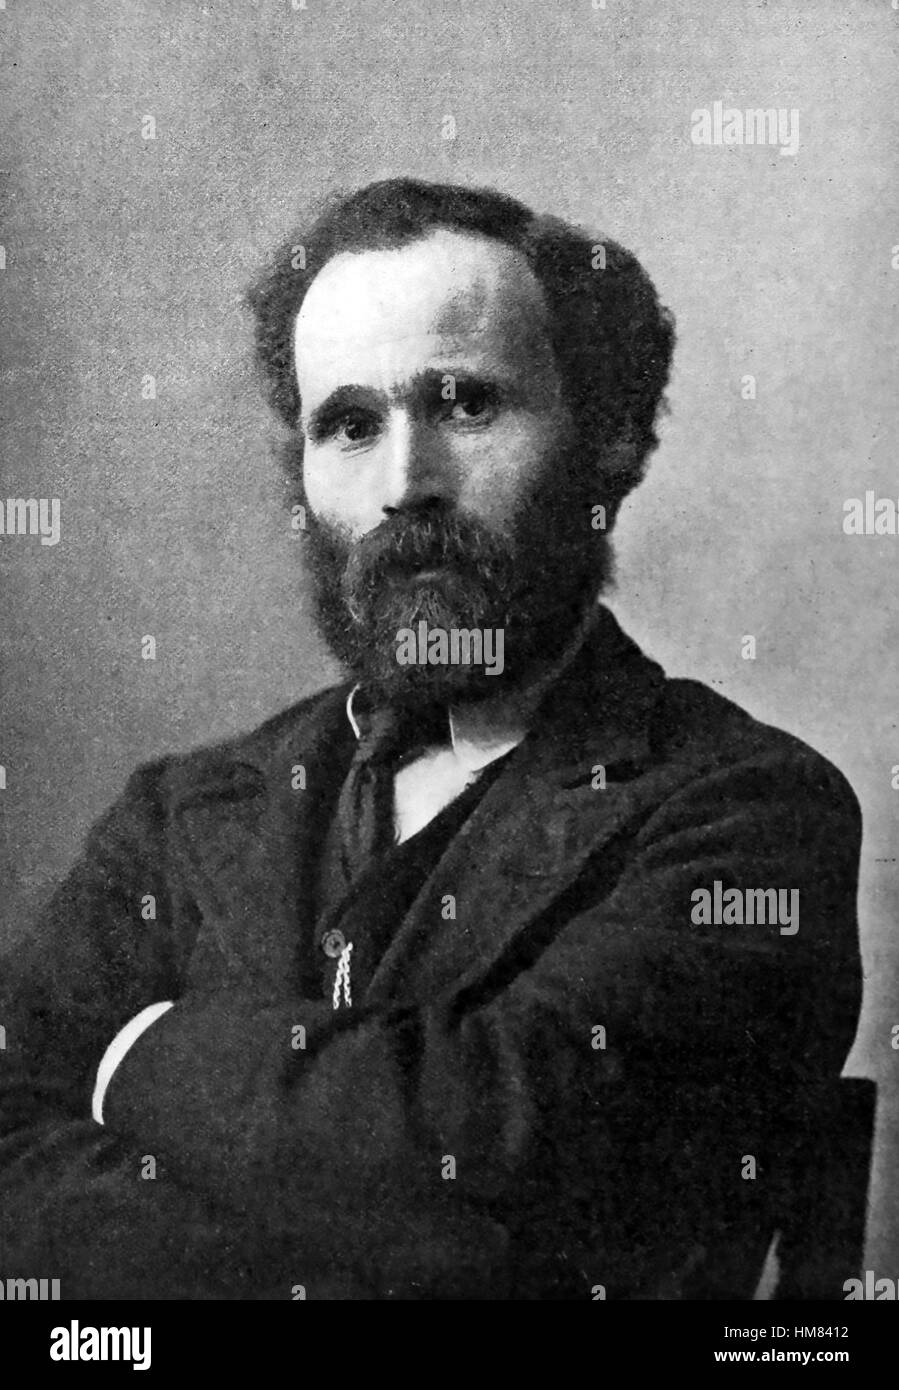 KEIR HARDIE (1856-1915) Scottish socialist and first Labour MP about 1890 - Stock Image